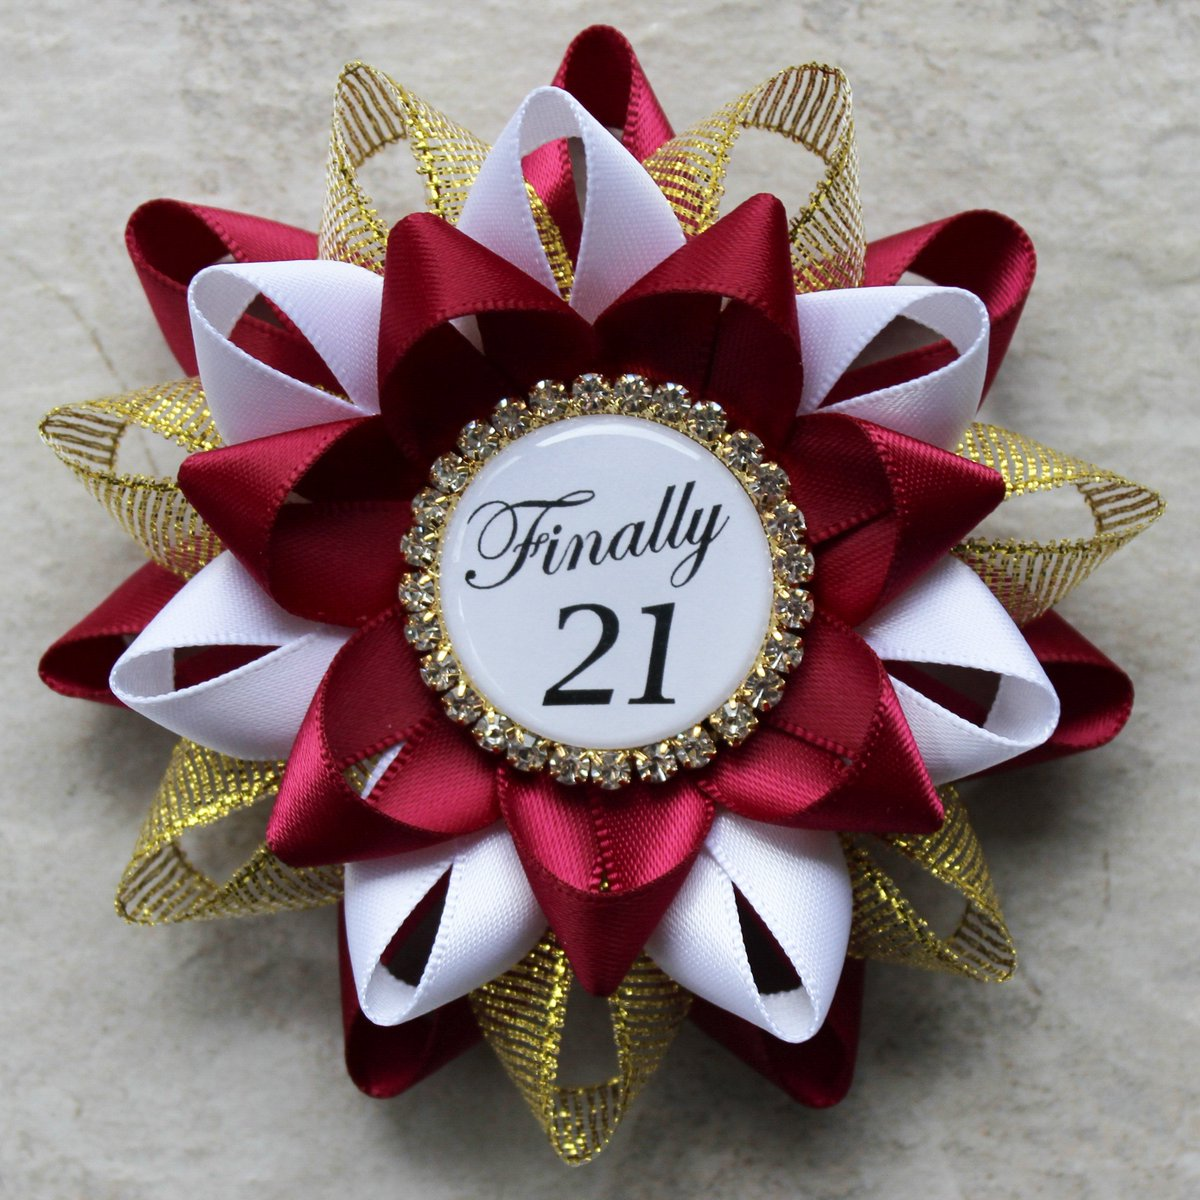 Finally 21, 21st Birthday Decorations, 21st Birthday Gift for Her, 21 and Legal, 21 Today Pin, Gift for Birthday Girl, Wine, Gold, White http://tuppu.net/3cb02255 #shopsmall #shop #etsy #sale #shopping #etsyshop #store